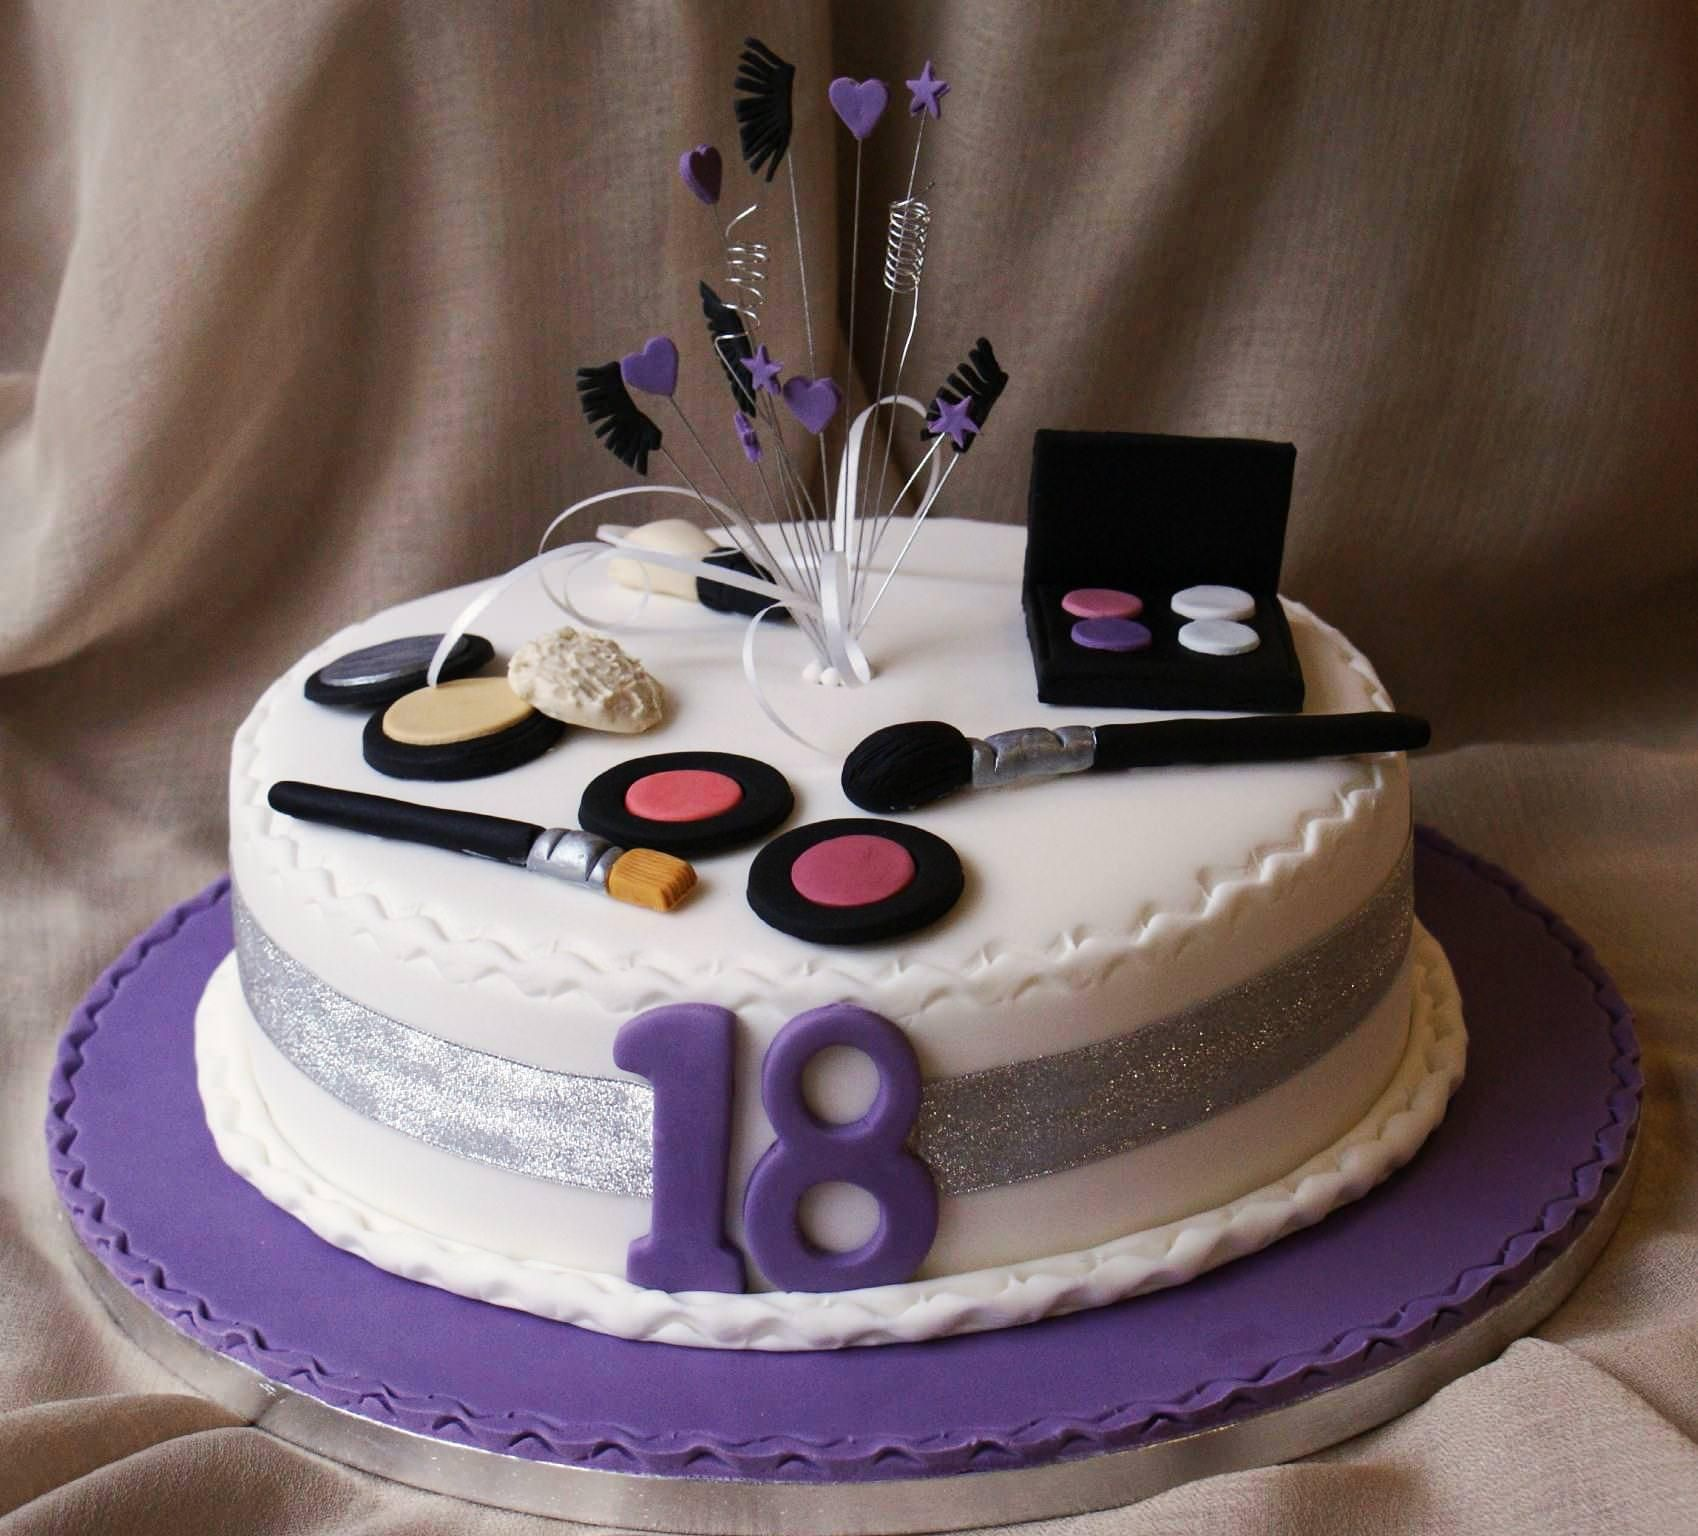 Cake Ideas Birthday Girl : 18th Birthday Cakes both for Boys and Girls cake ideas ...